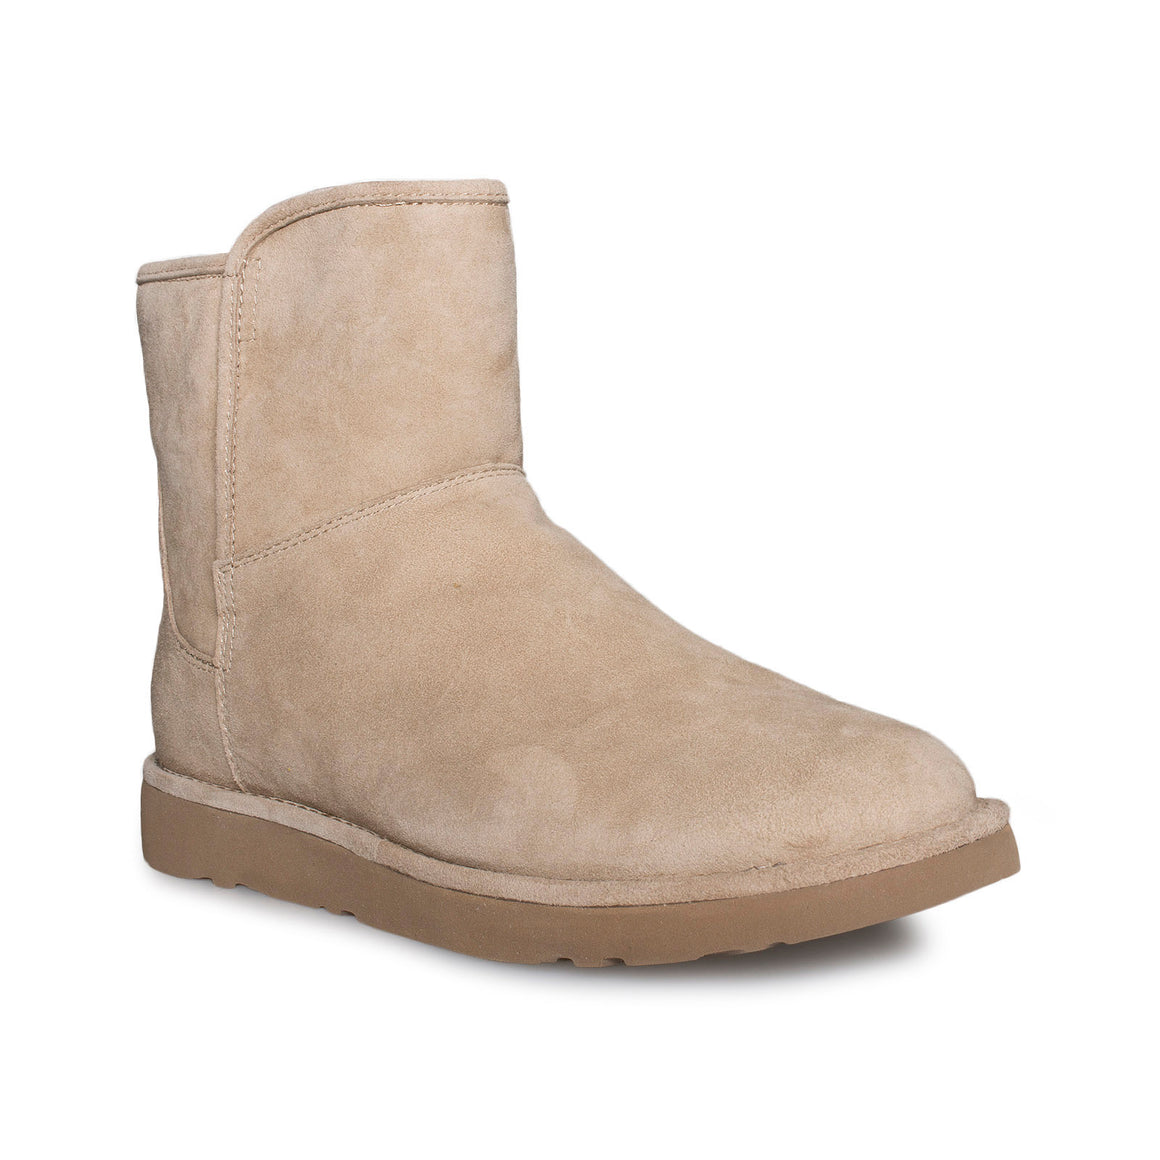 UGG Abree Mini Fawn Boots - Women's